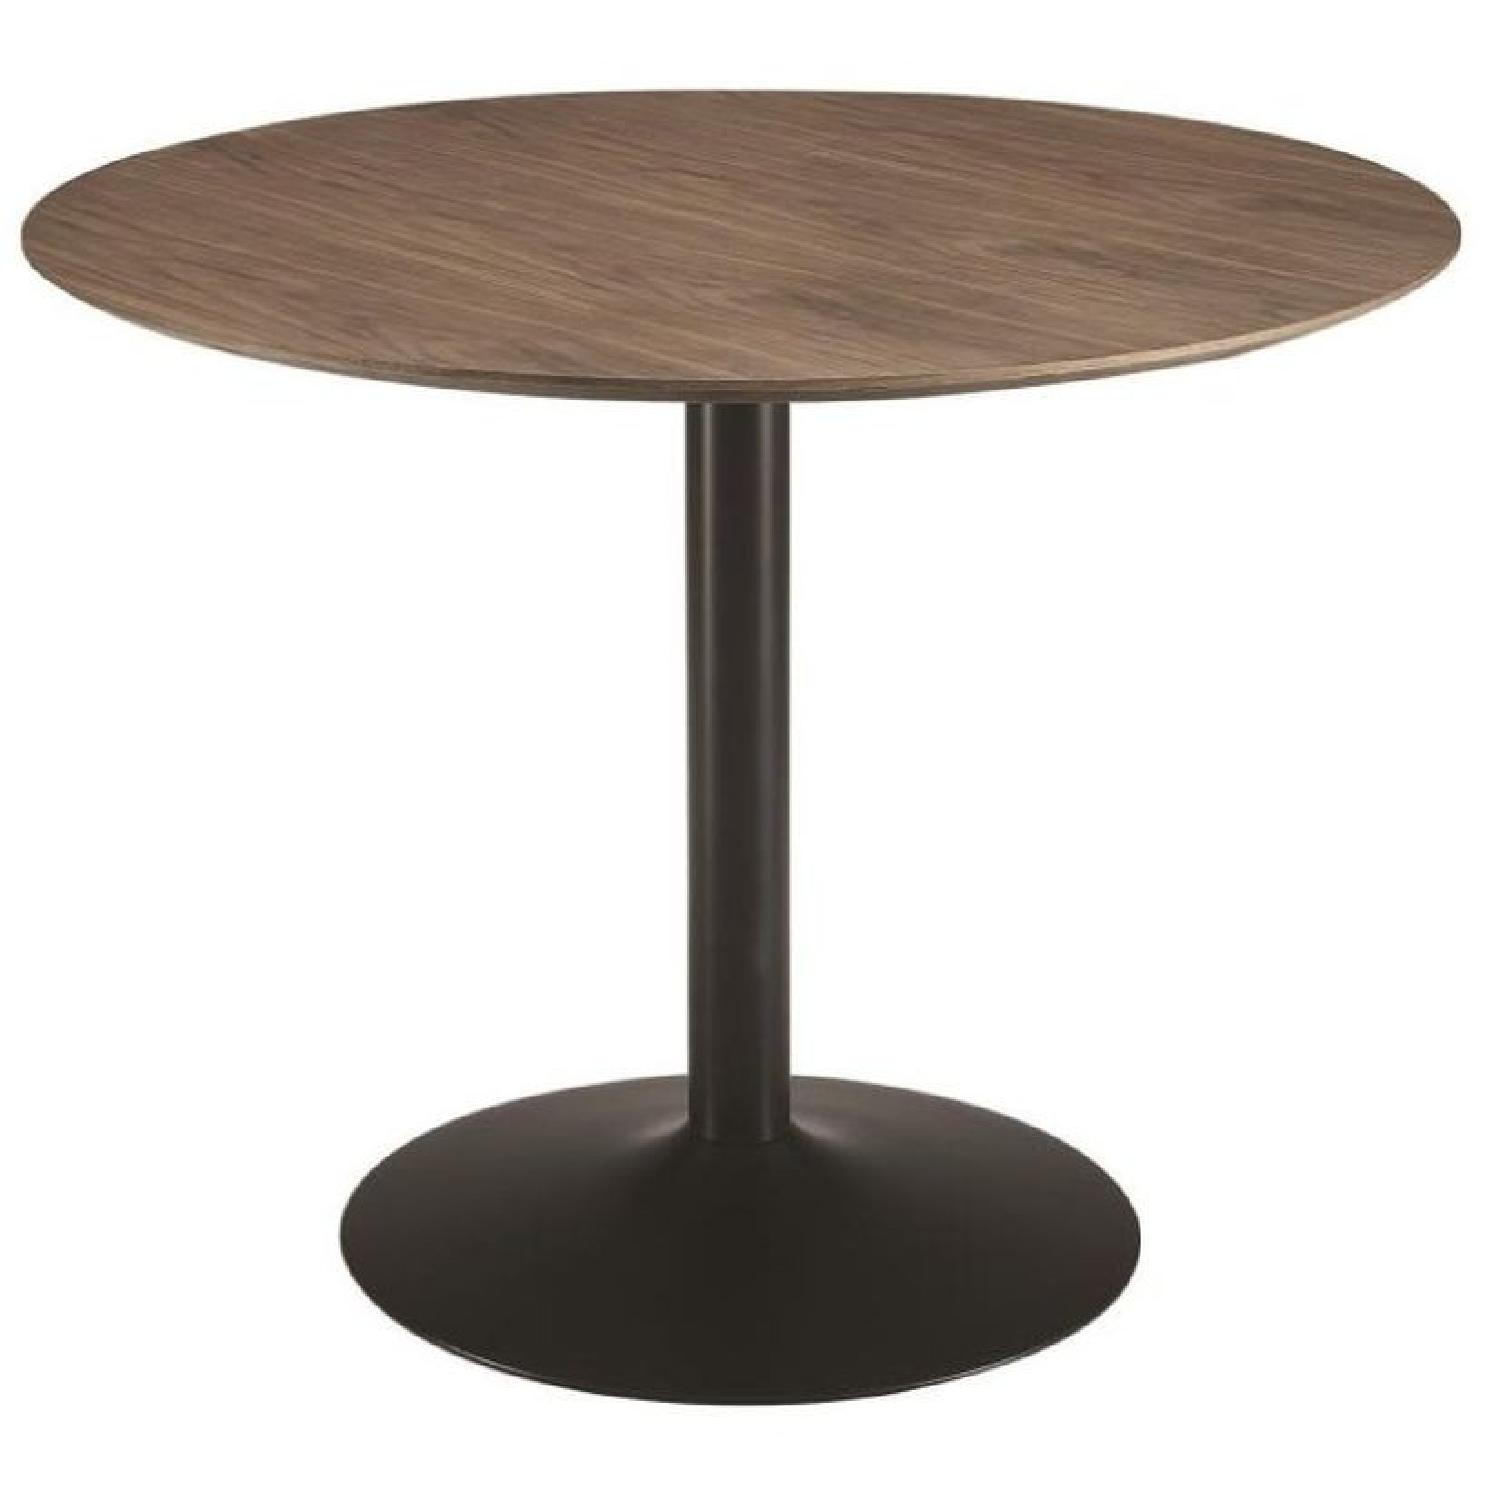 Mid Century Modern Style Dining Table in High Gloss Finish - image-4